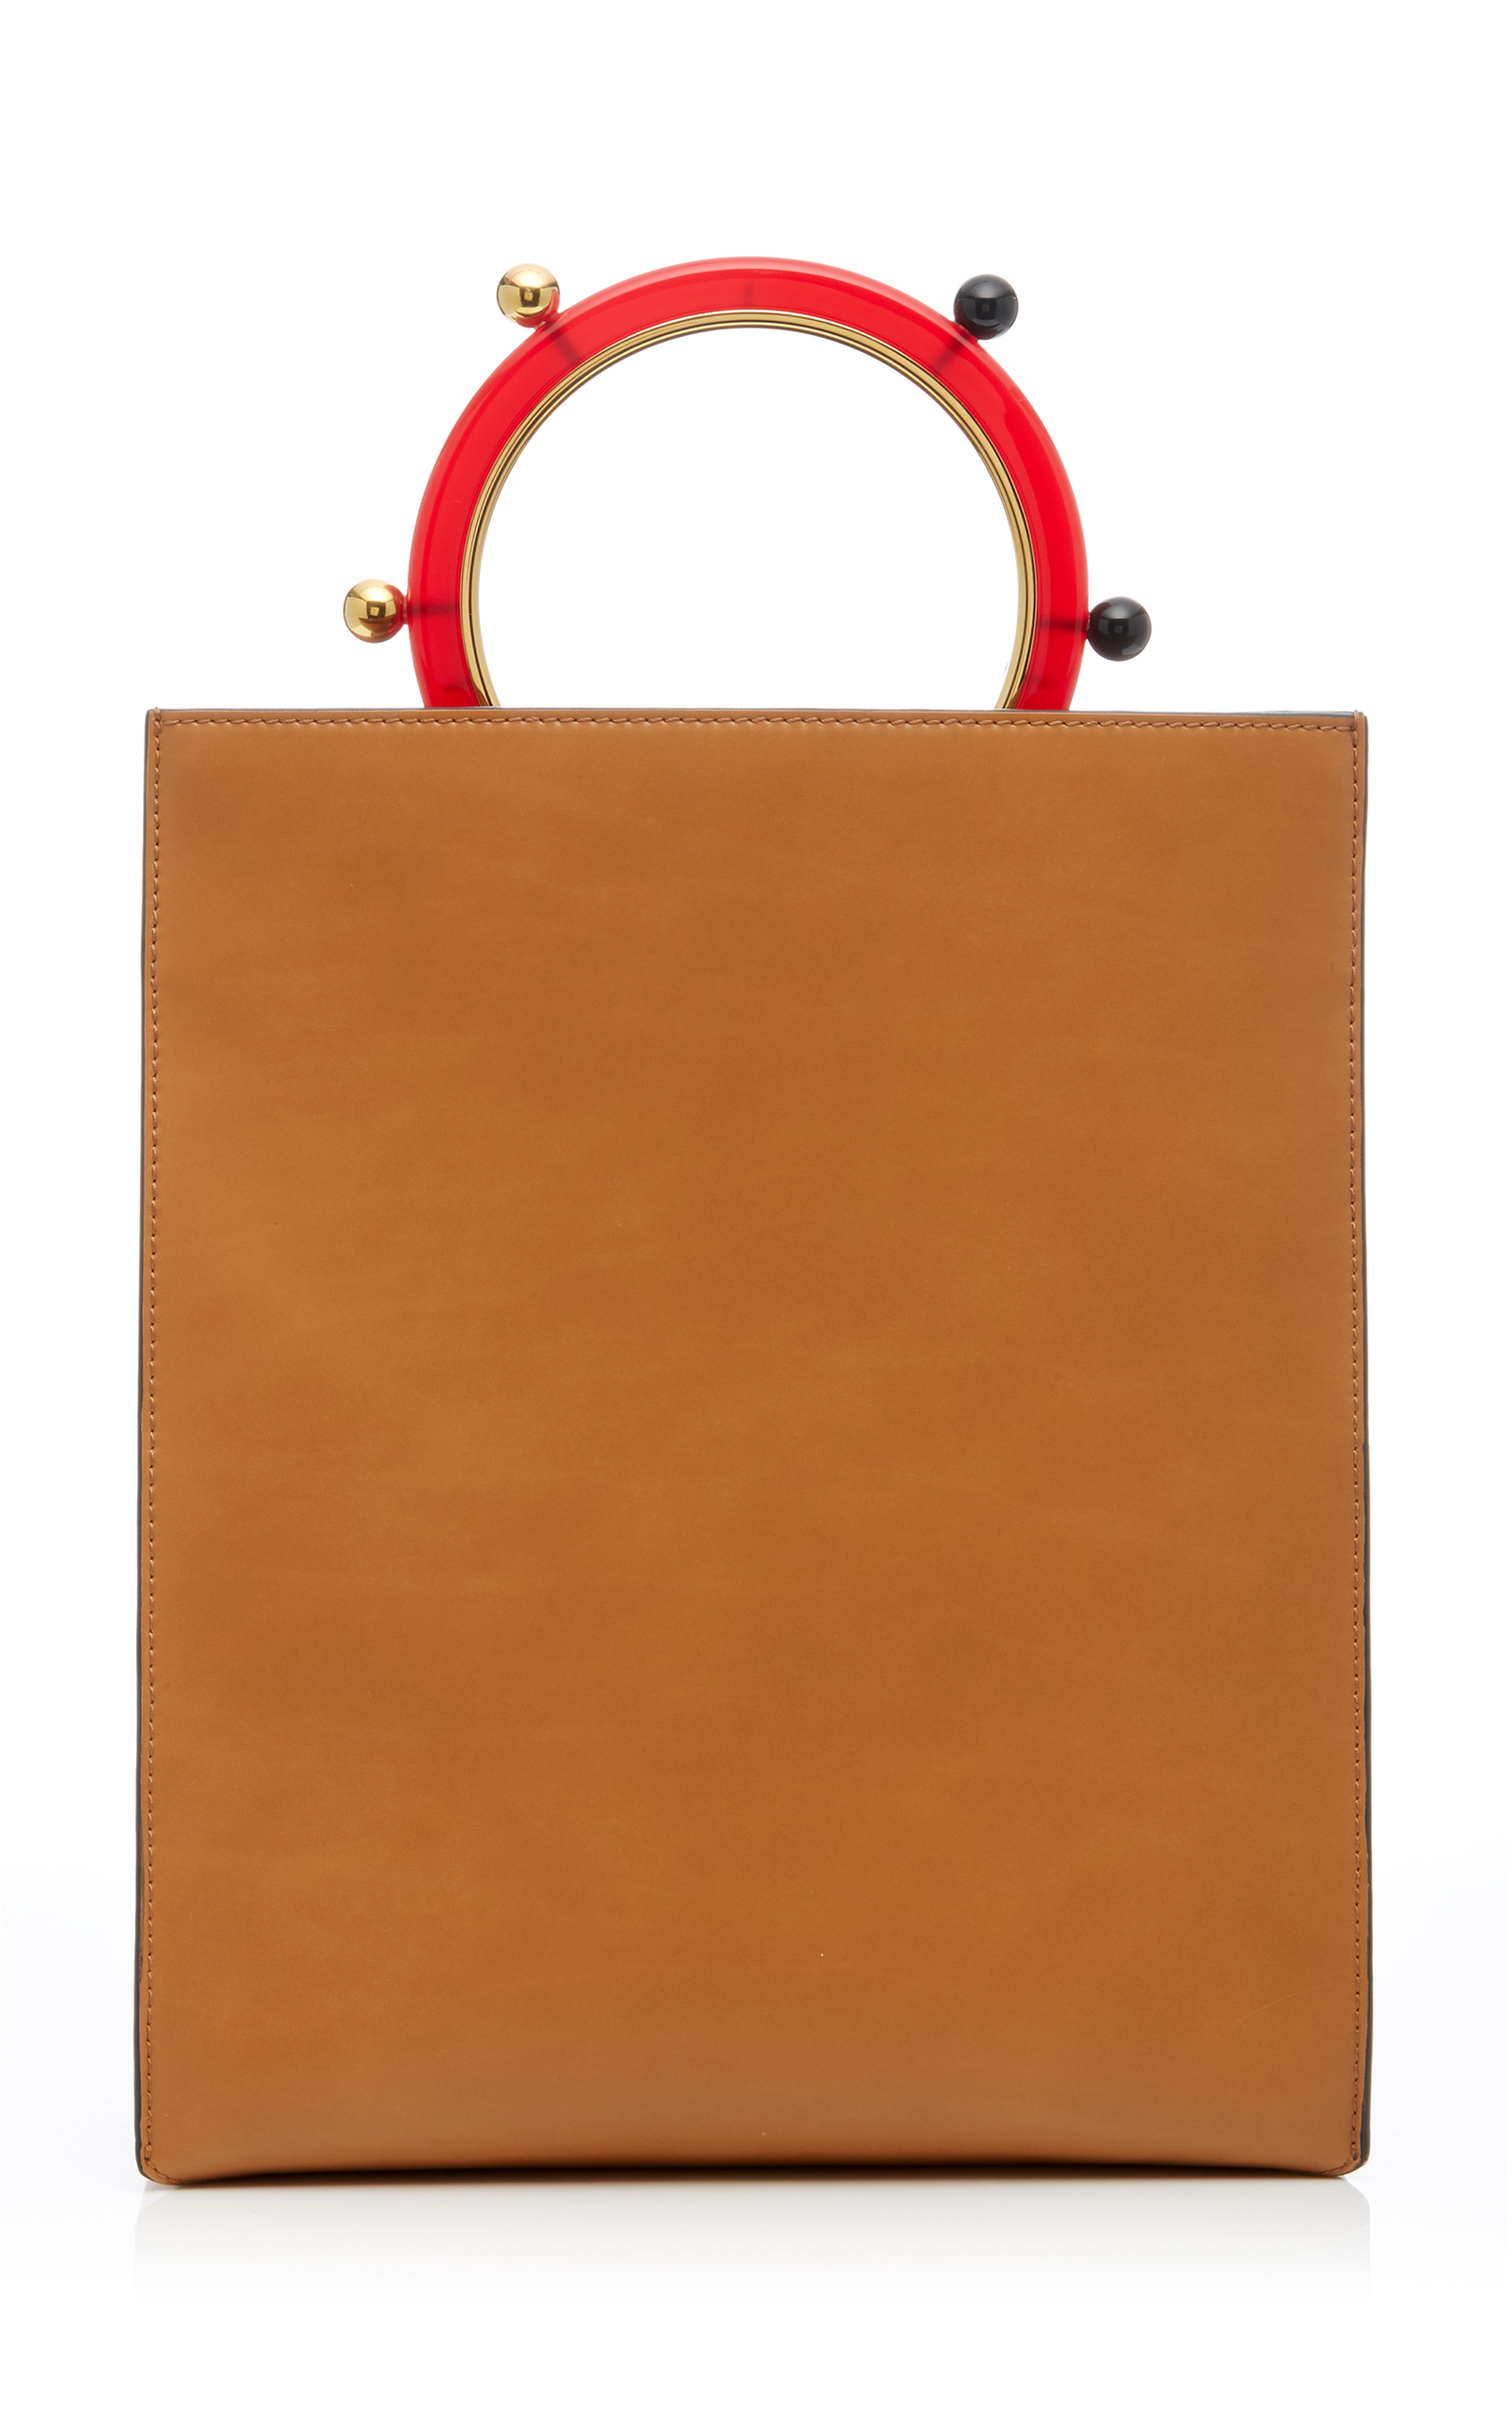 Pannier Shopping Bag Marni aSo3ZOt